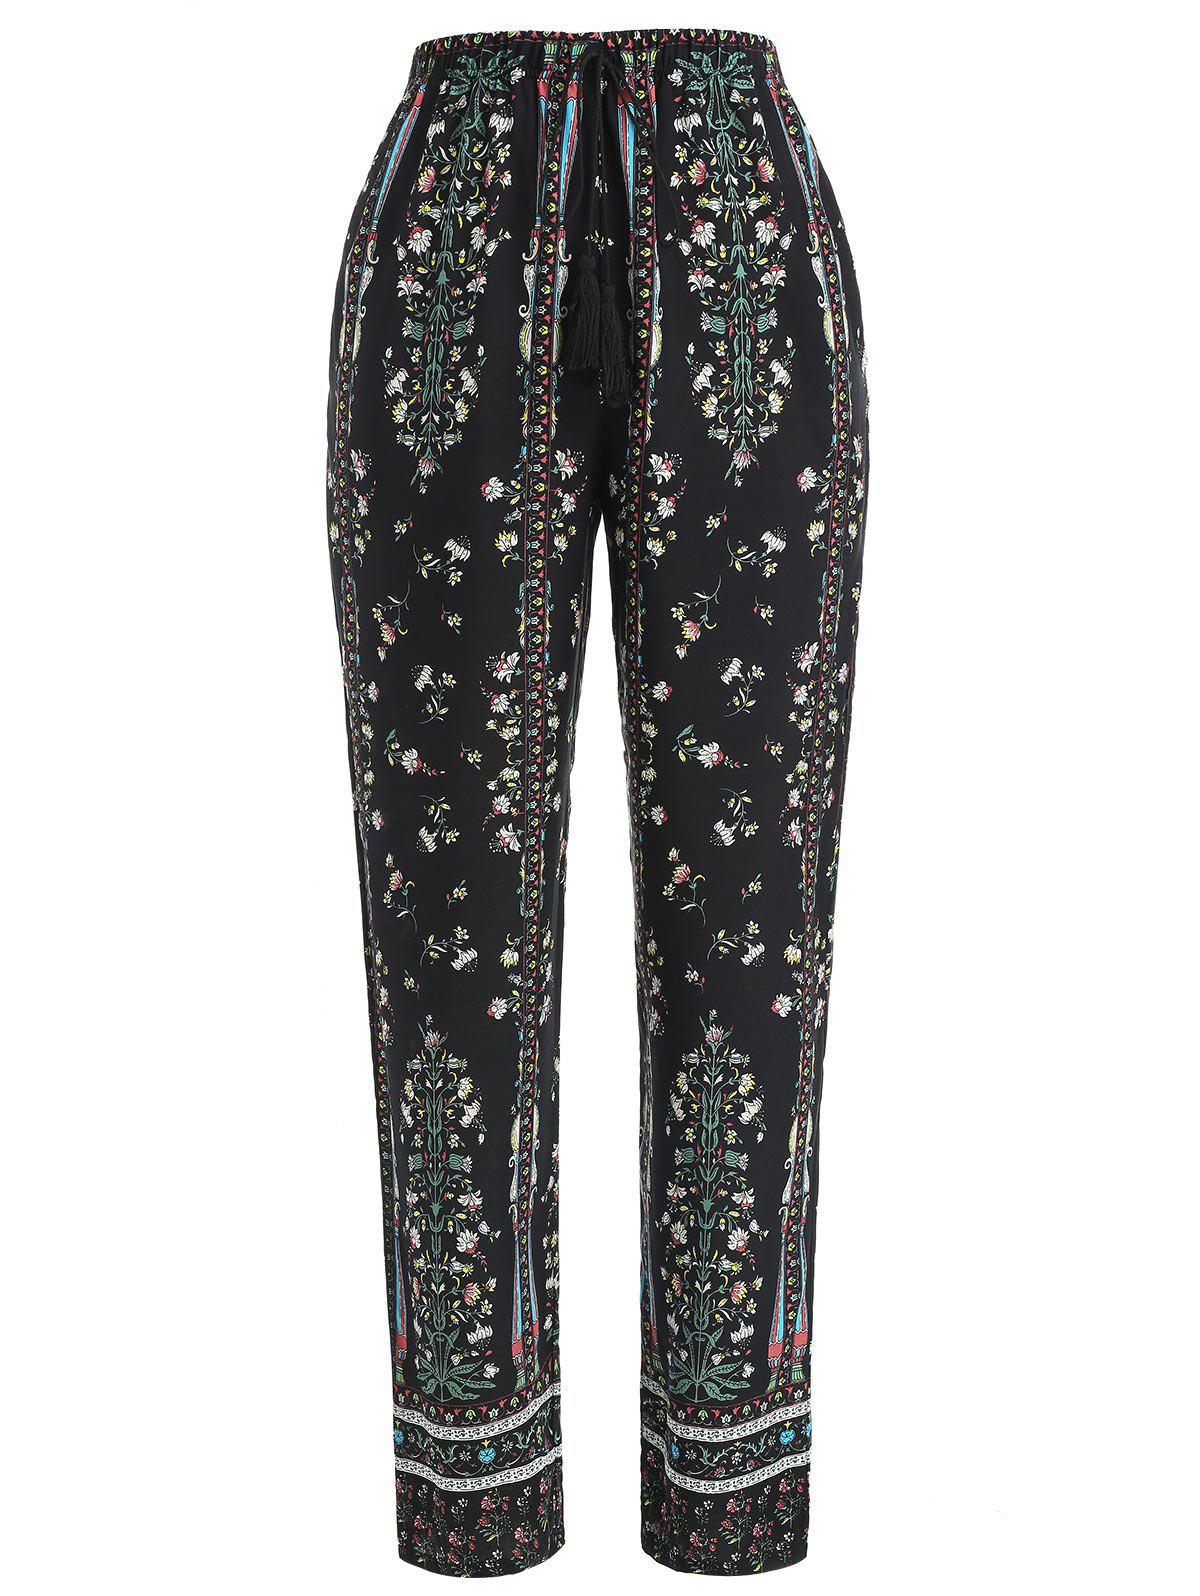 New Drawstring Floral Print Sleeping Pants